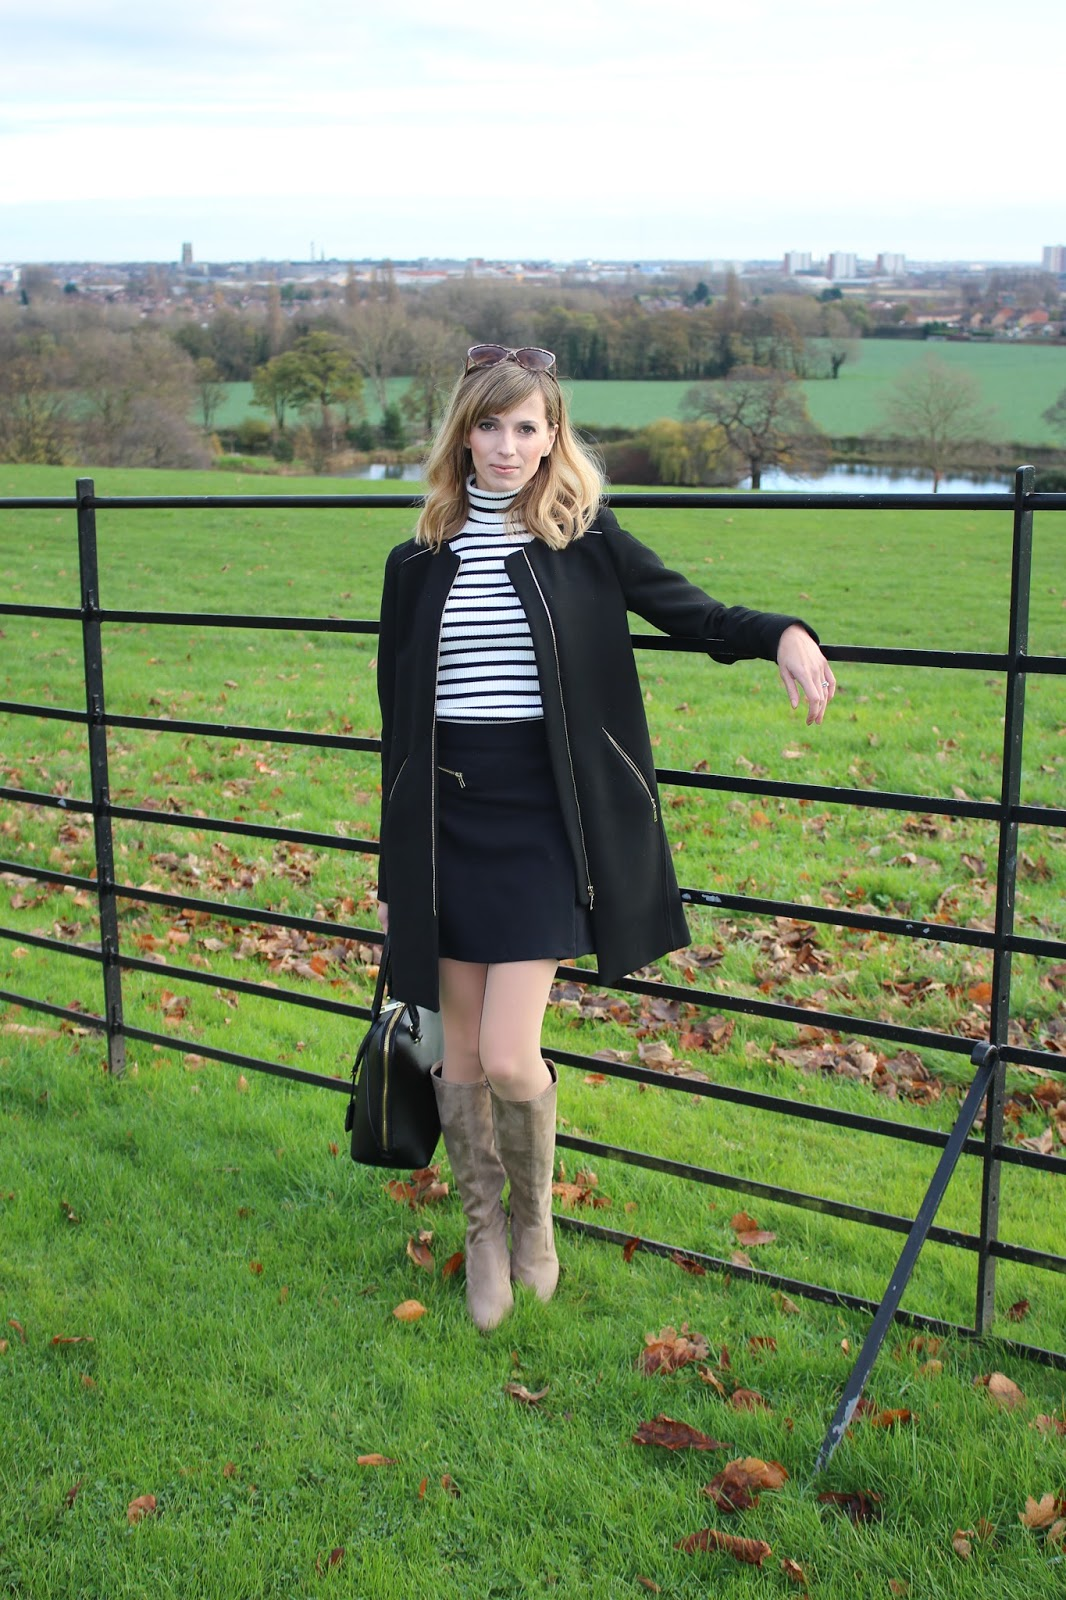 OOTD featuring Topshop, Zara and Online Avenue